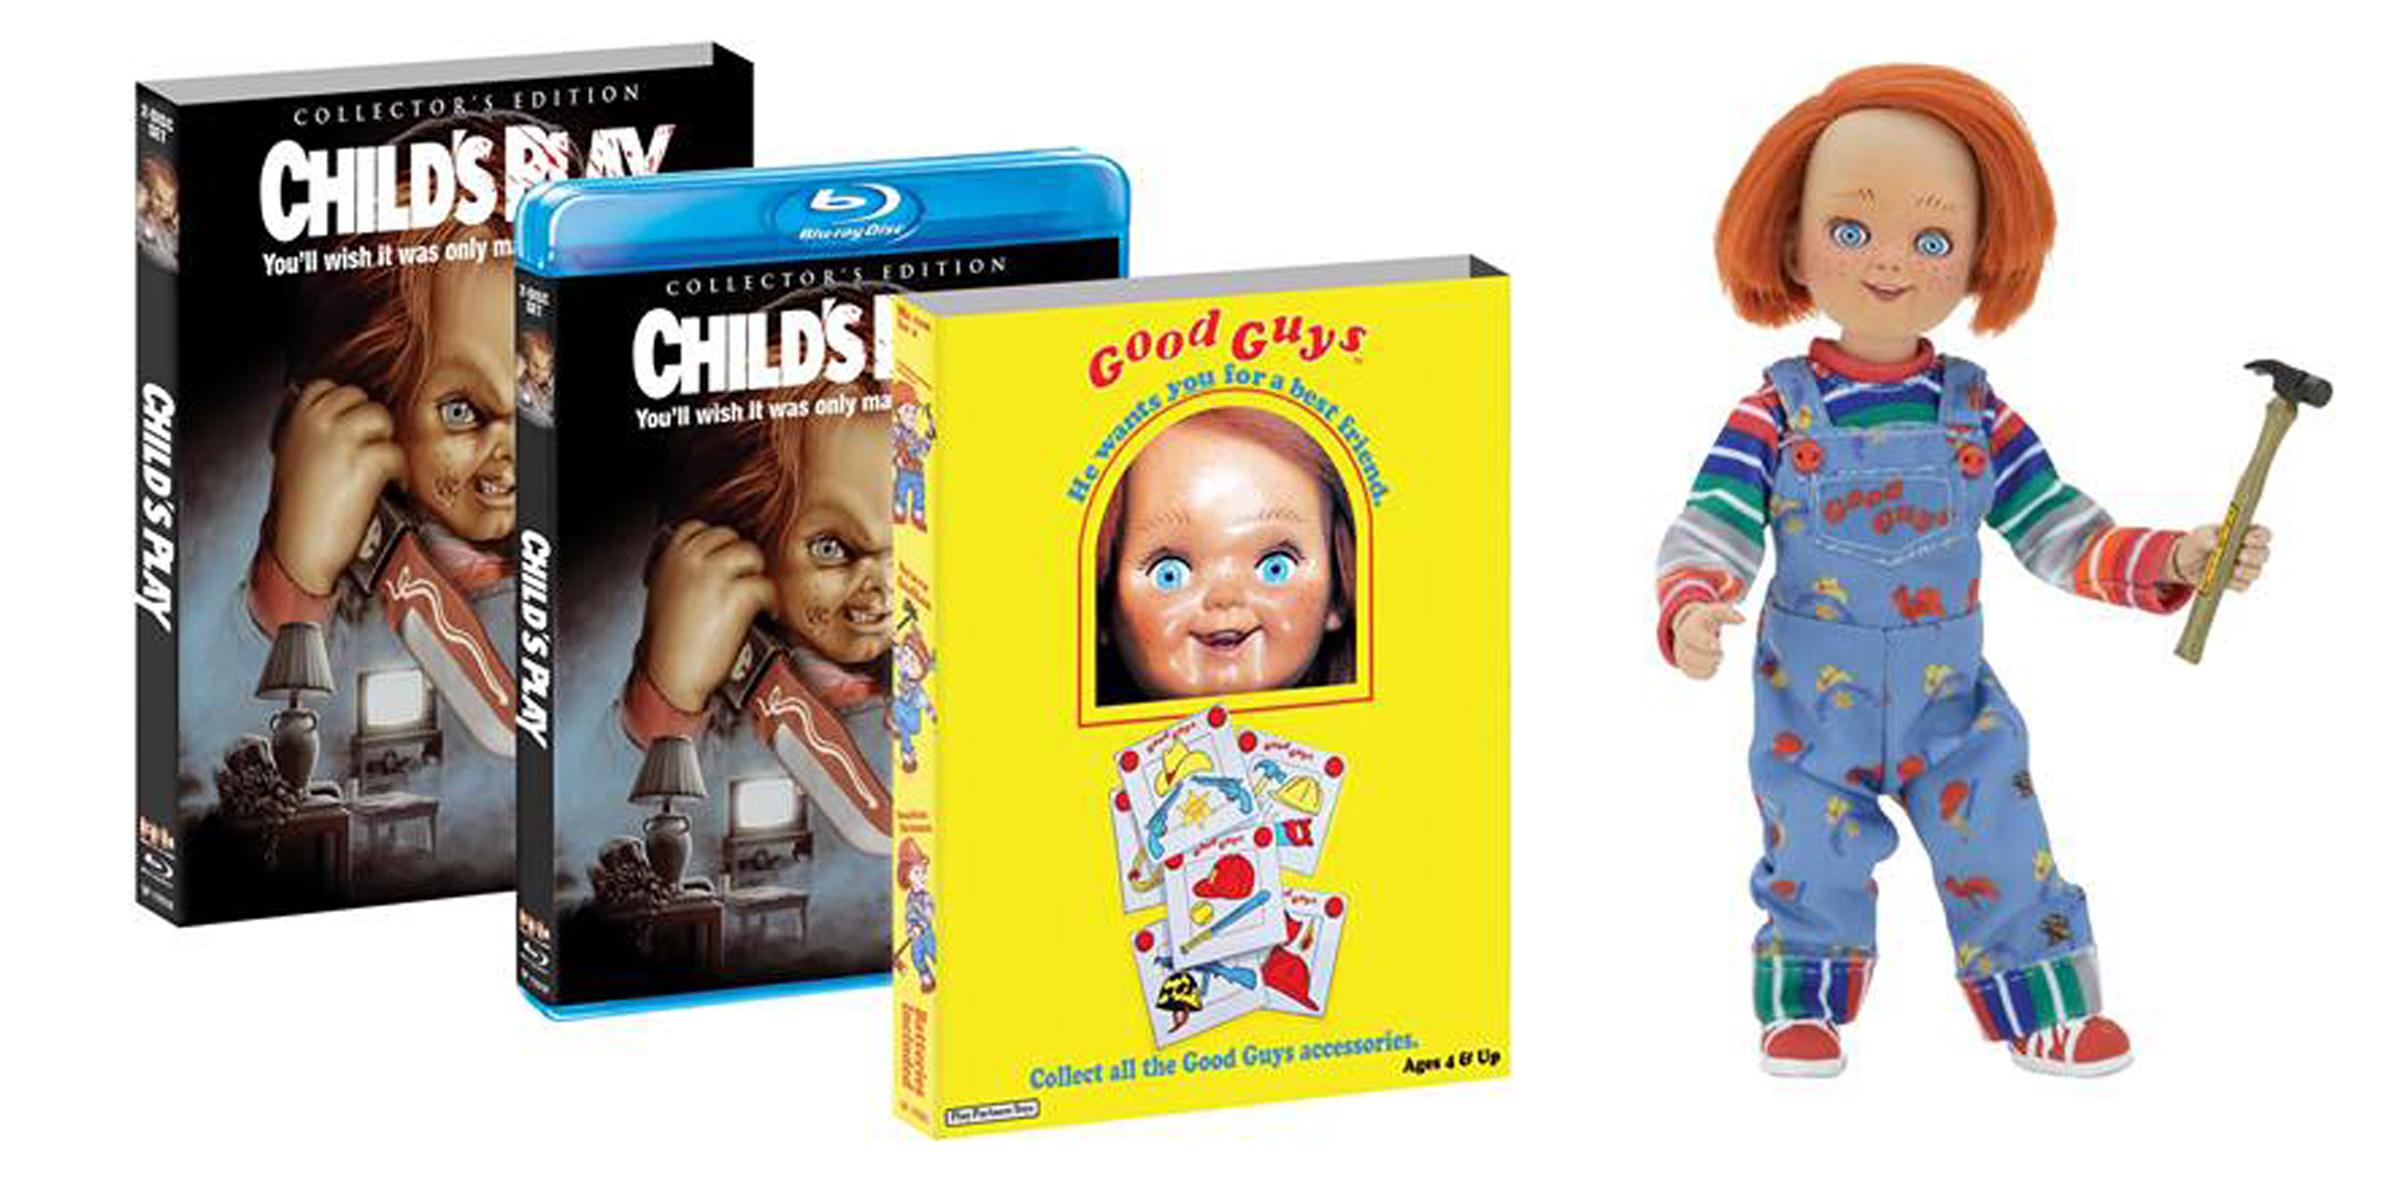 NECA CHUCKY DOLL FOR LIMITED EDITION OF CHILD'S PLAY Blu-ray